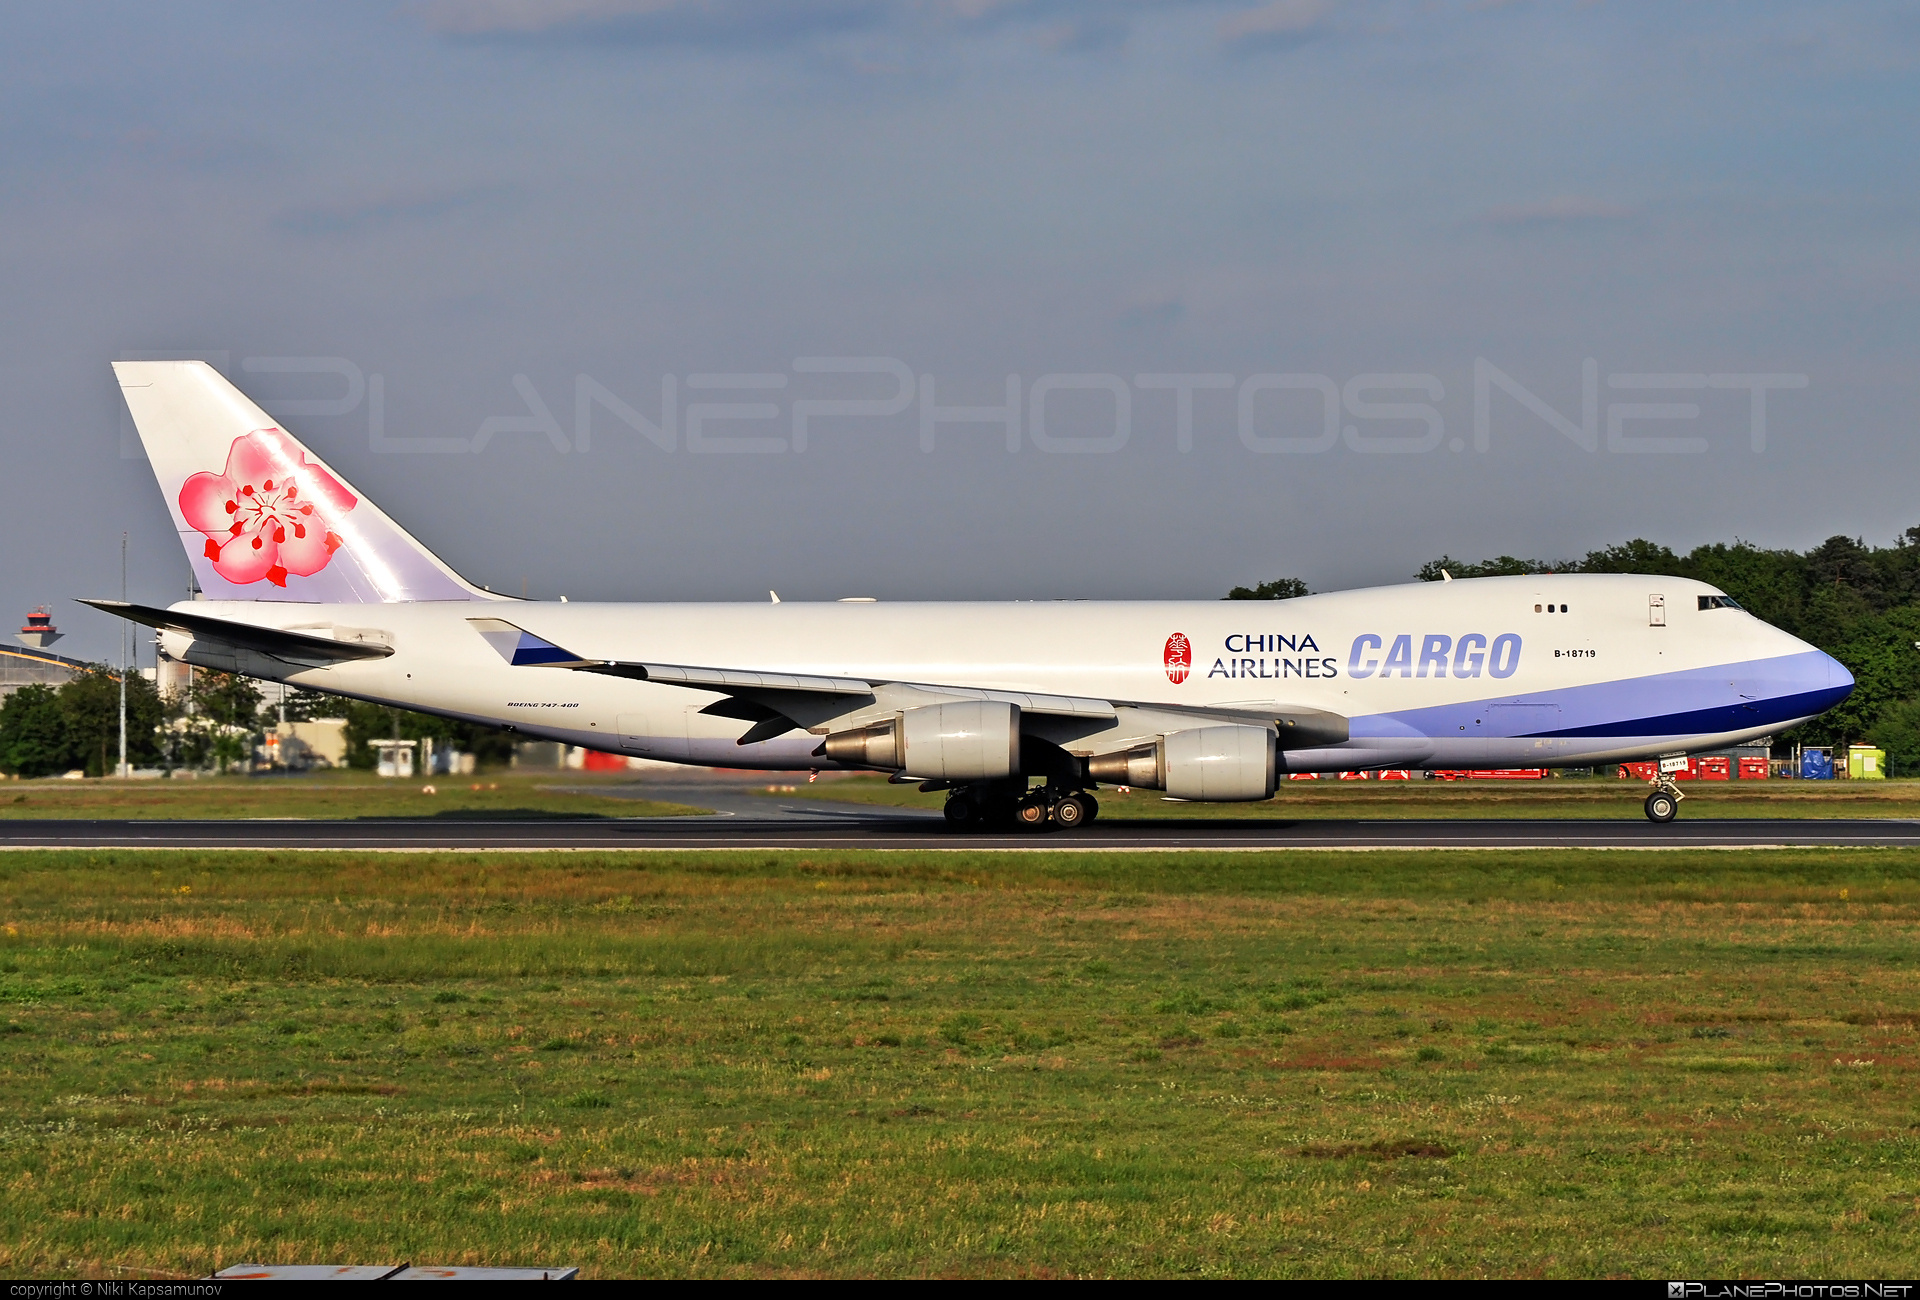 Boeing 747-400F - B-18719 operated by China Airlines Cargo #b747 #boeing #boeing747 #chinaairlines #chinaairlinescargo #jumbo